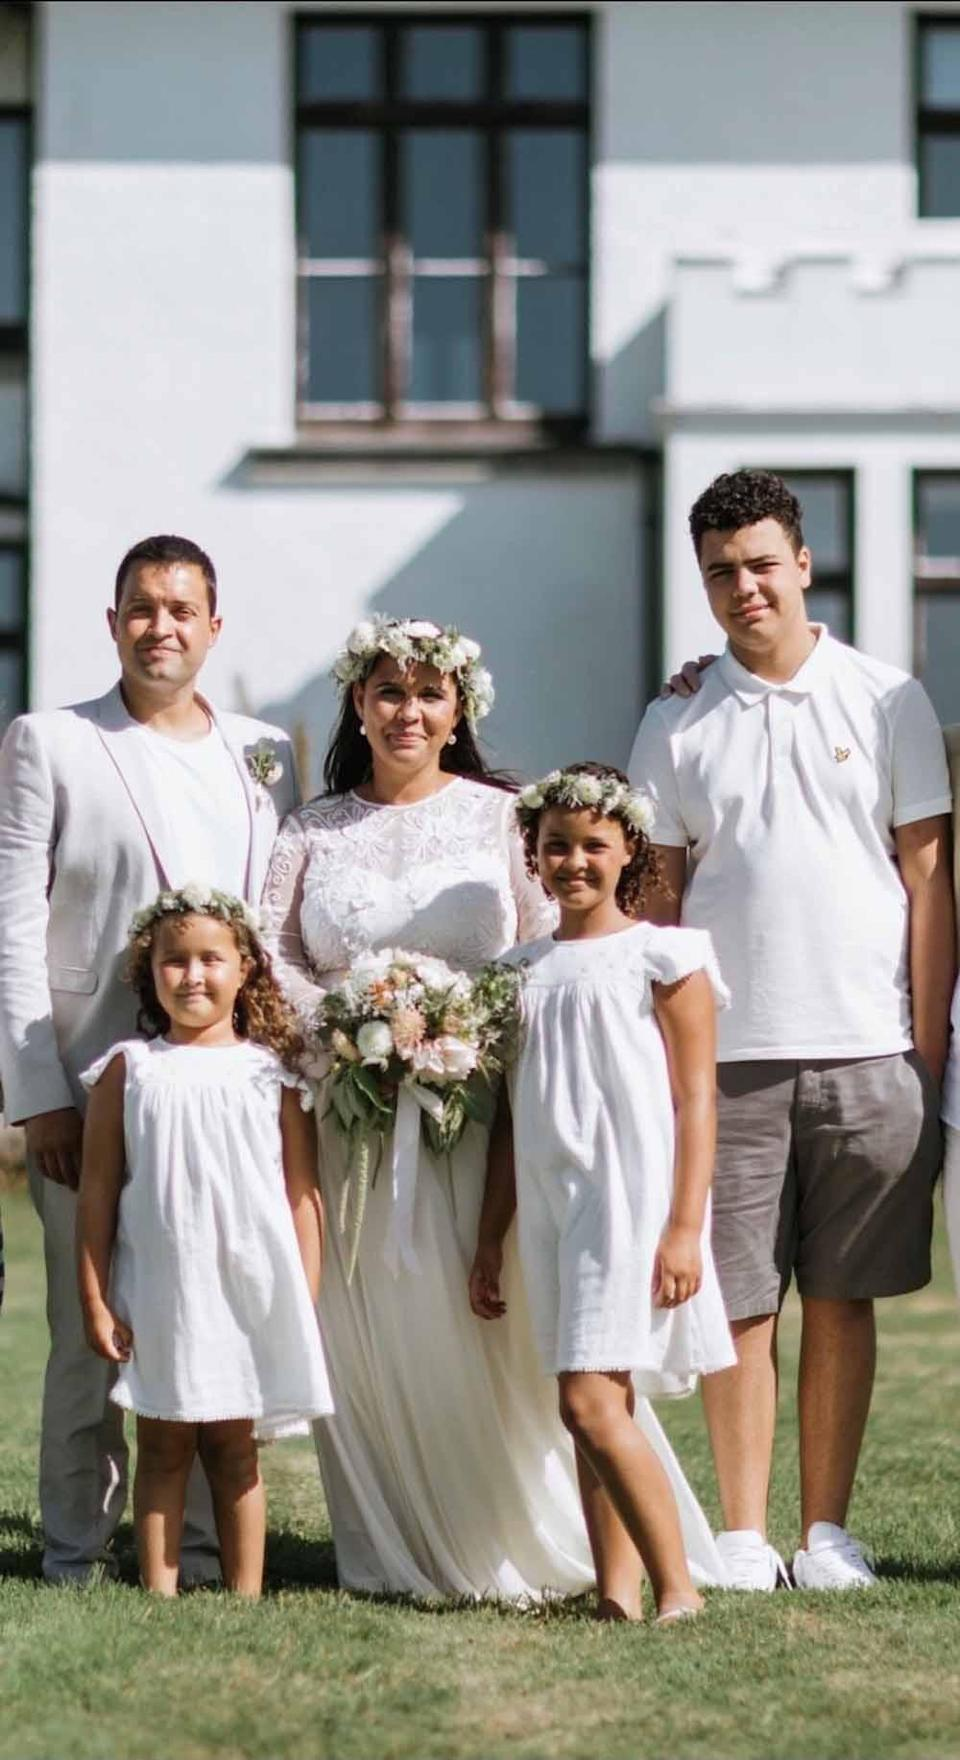 Christian, Saphire, Sarah, Scarlet and Louis, at the couple's wedding in September 2019. PA REAL LIFE/ANDY REEVES PHOTOGRAPHY